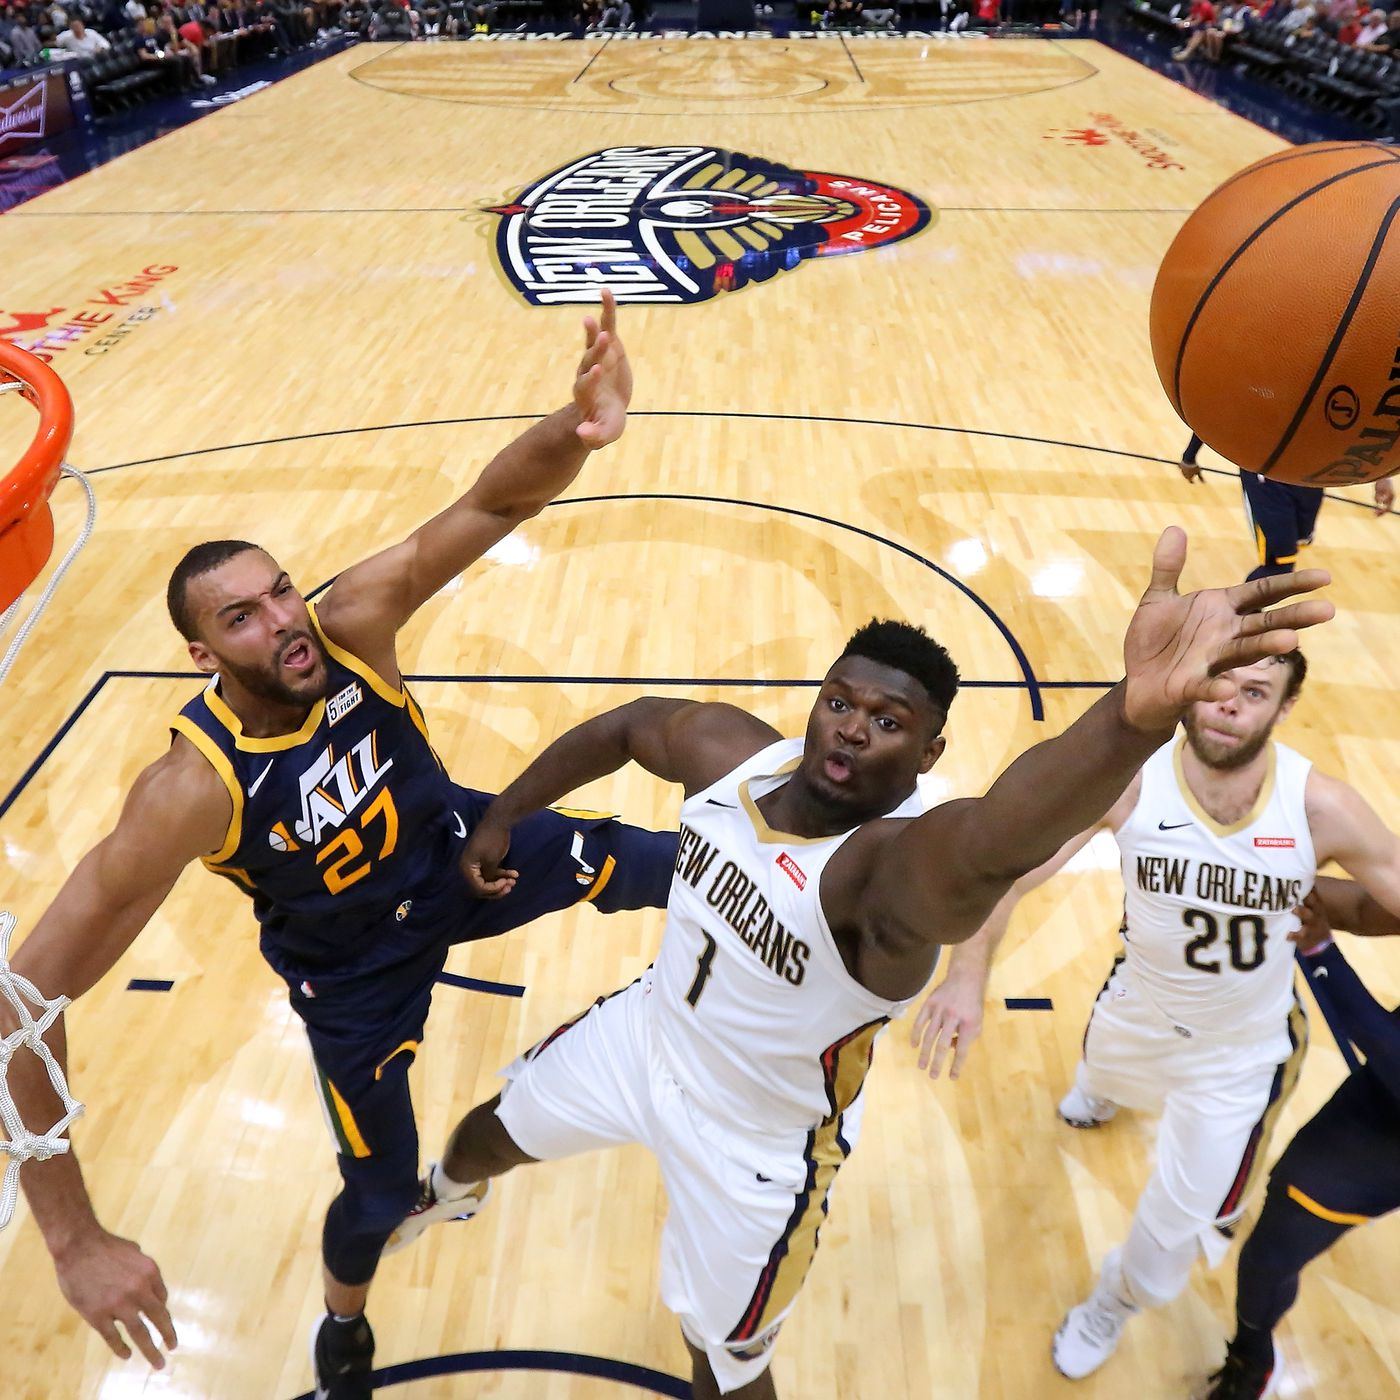 New Orleans Pelicans Remain Perfect In Preseason Play As Zion And Naw Were Spectacular In Victory Over Utah Jazz 128 127 The Bird Writes